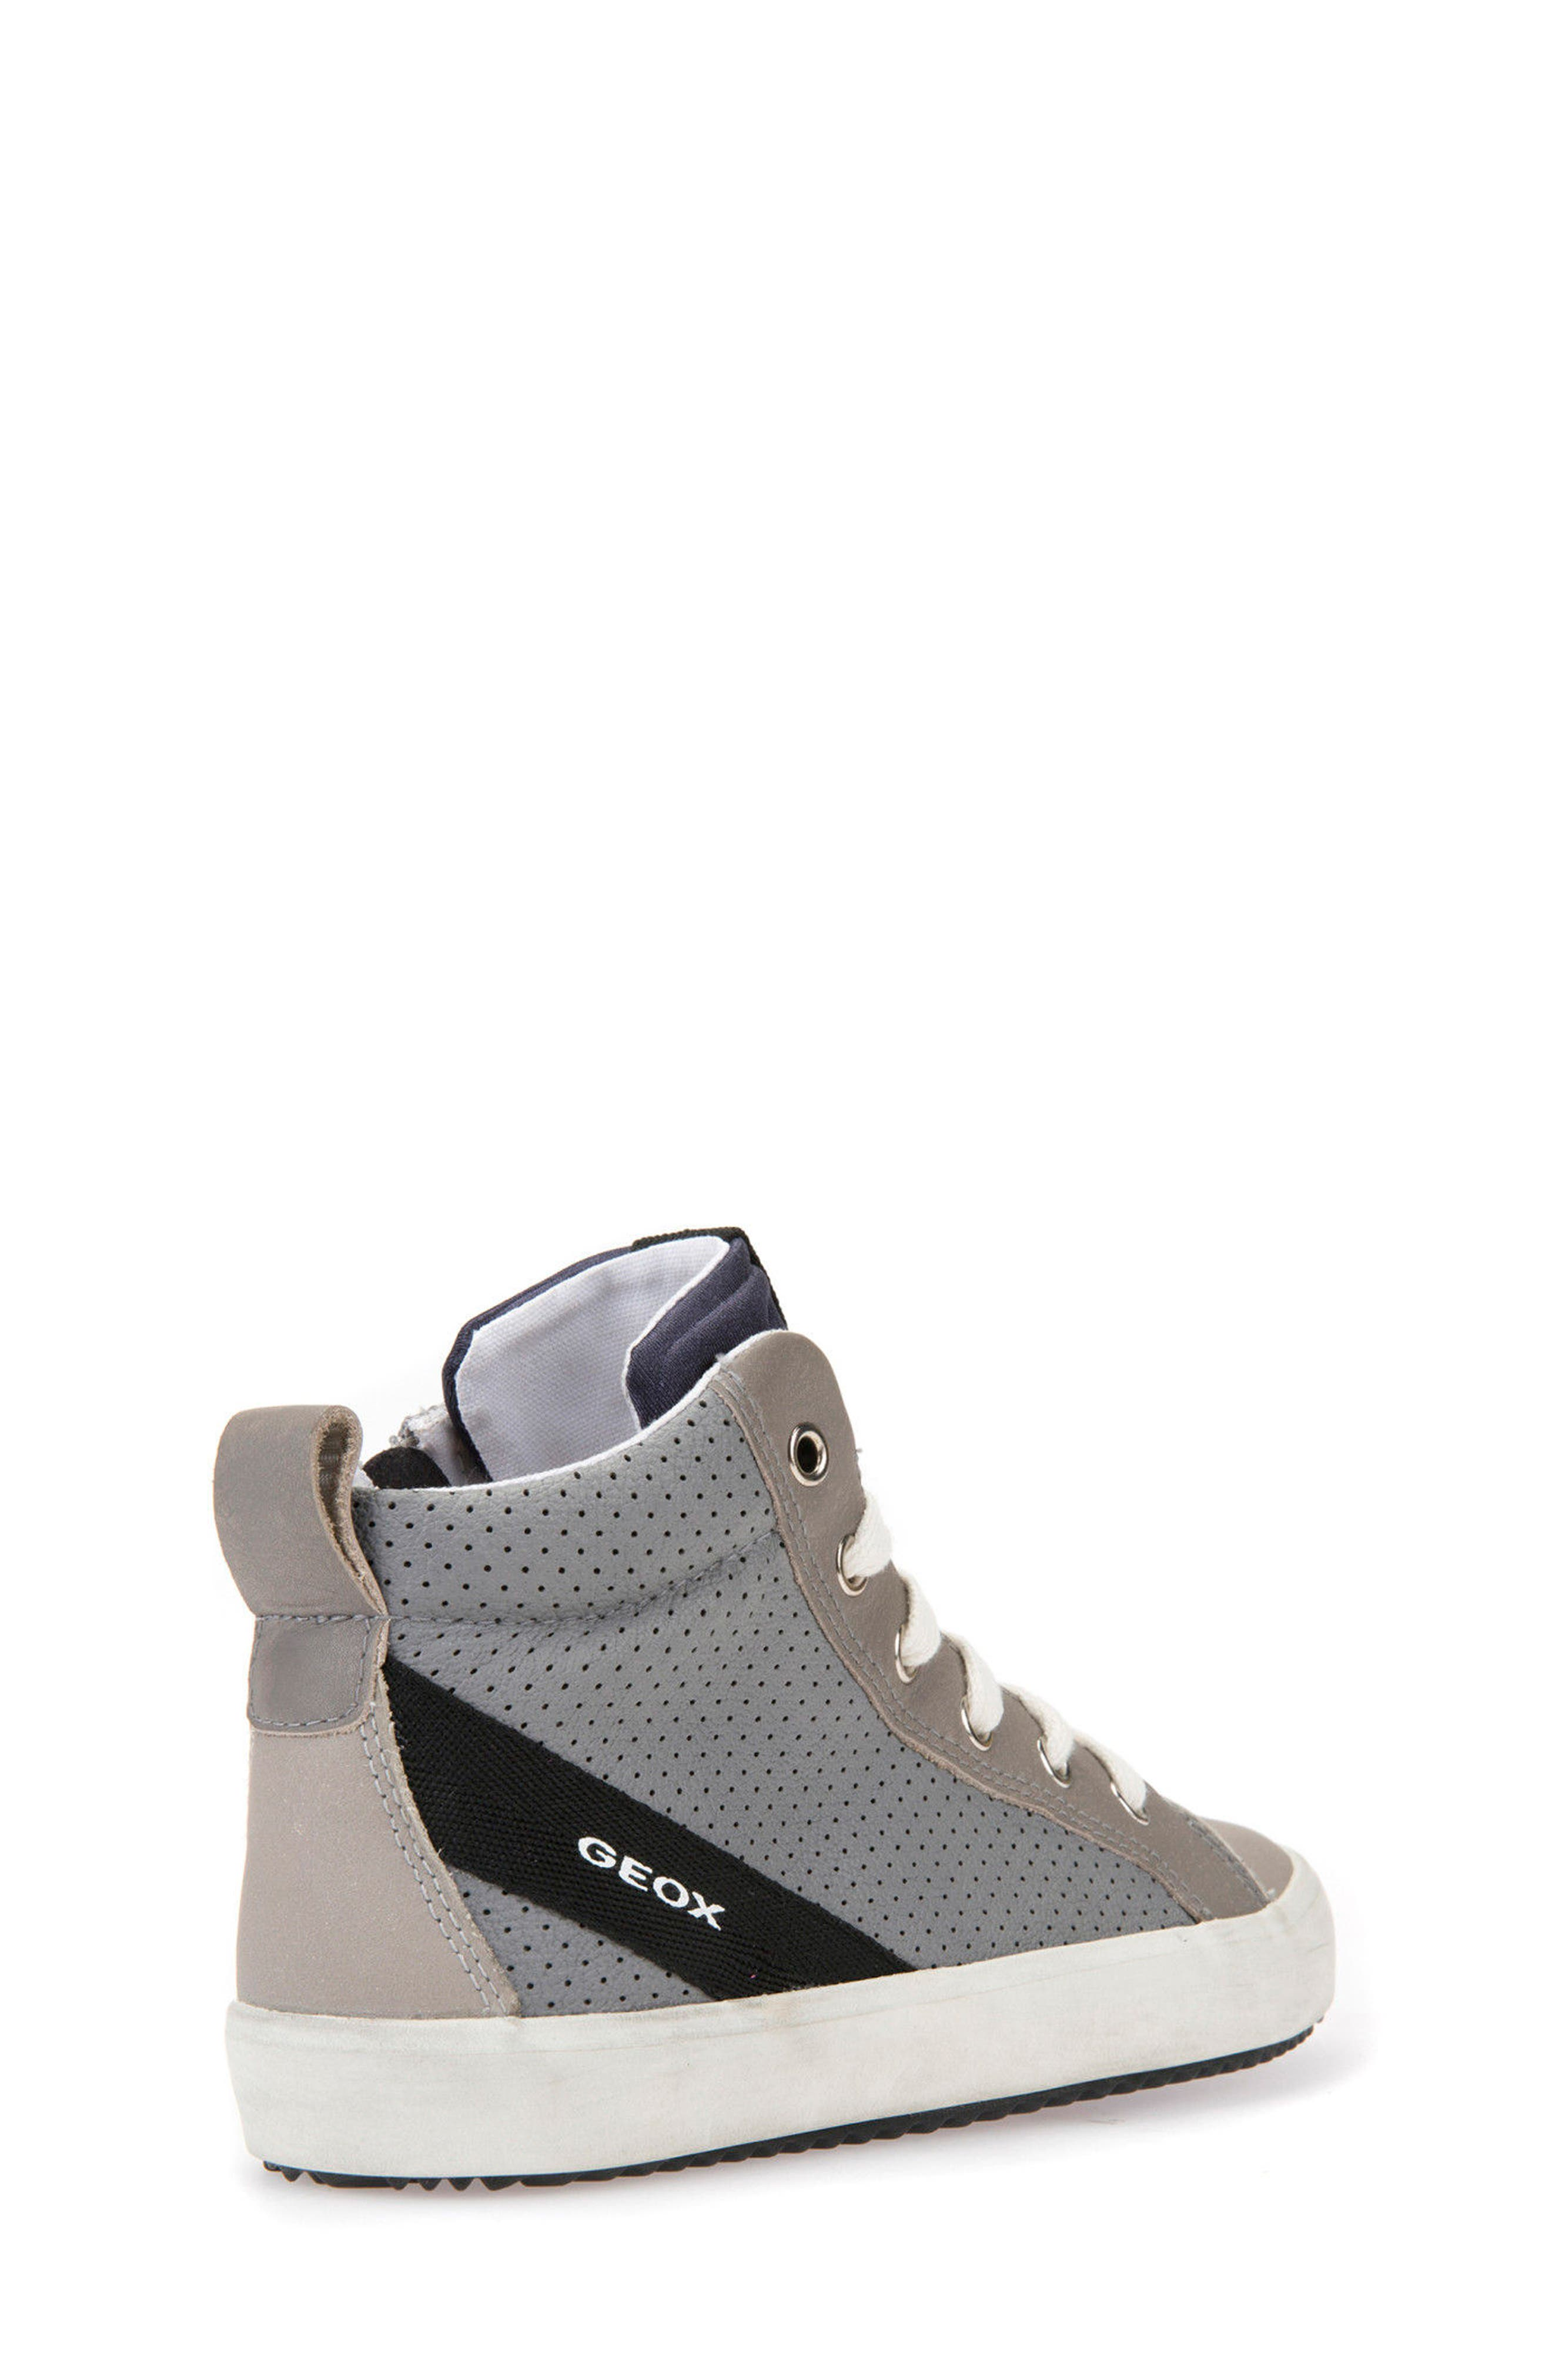 Alonisso Perforated Mid Top Sneaker,                             Alternate thumbnail 2, color,                             GREY/ LIGHT GREY